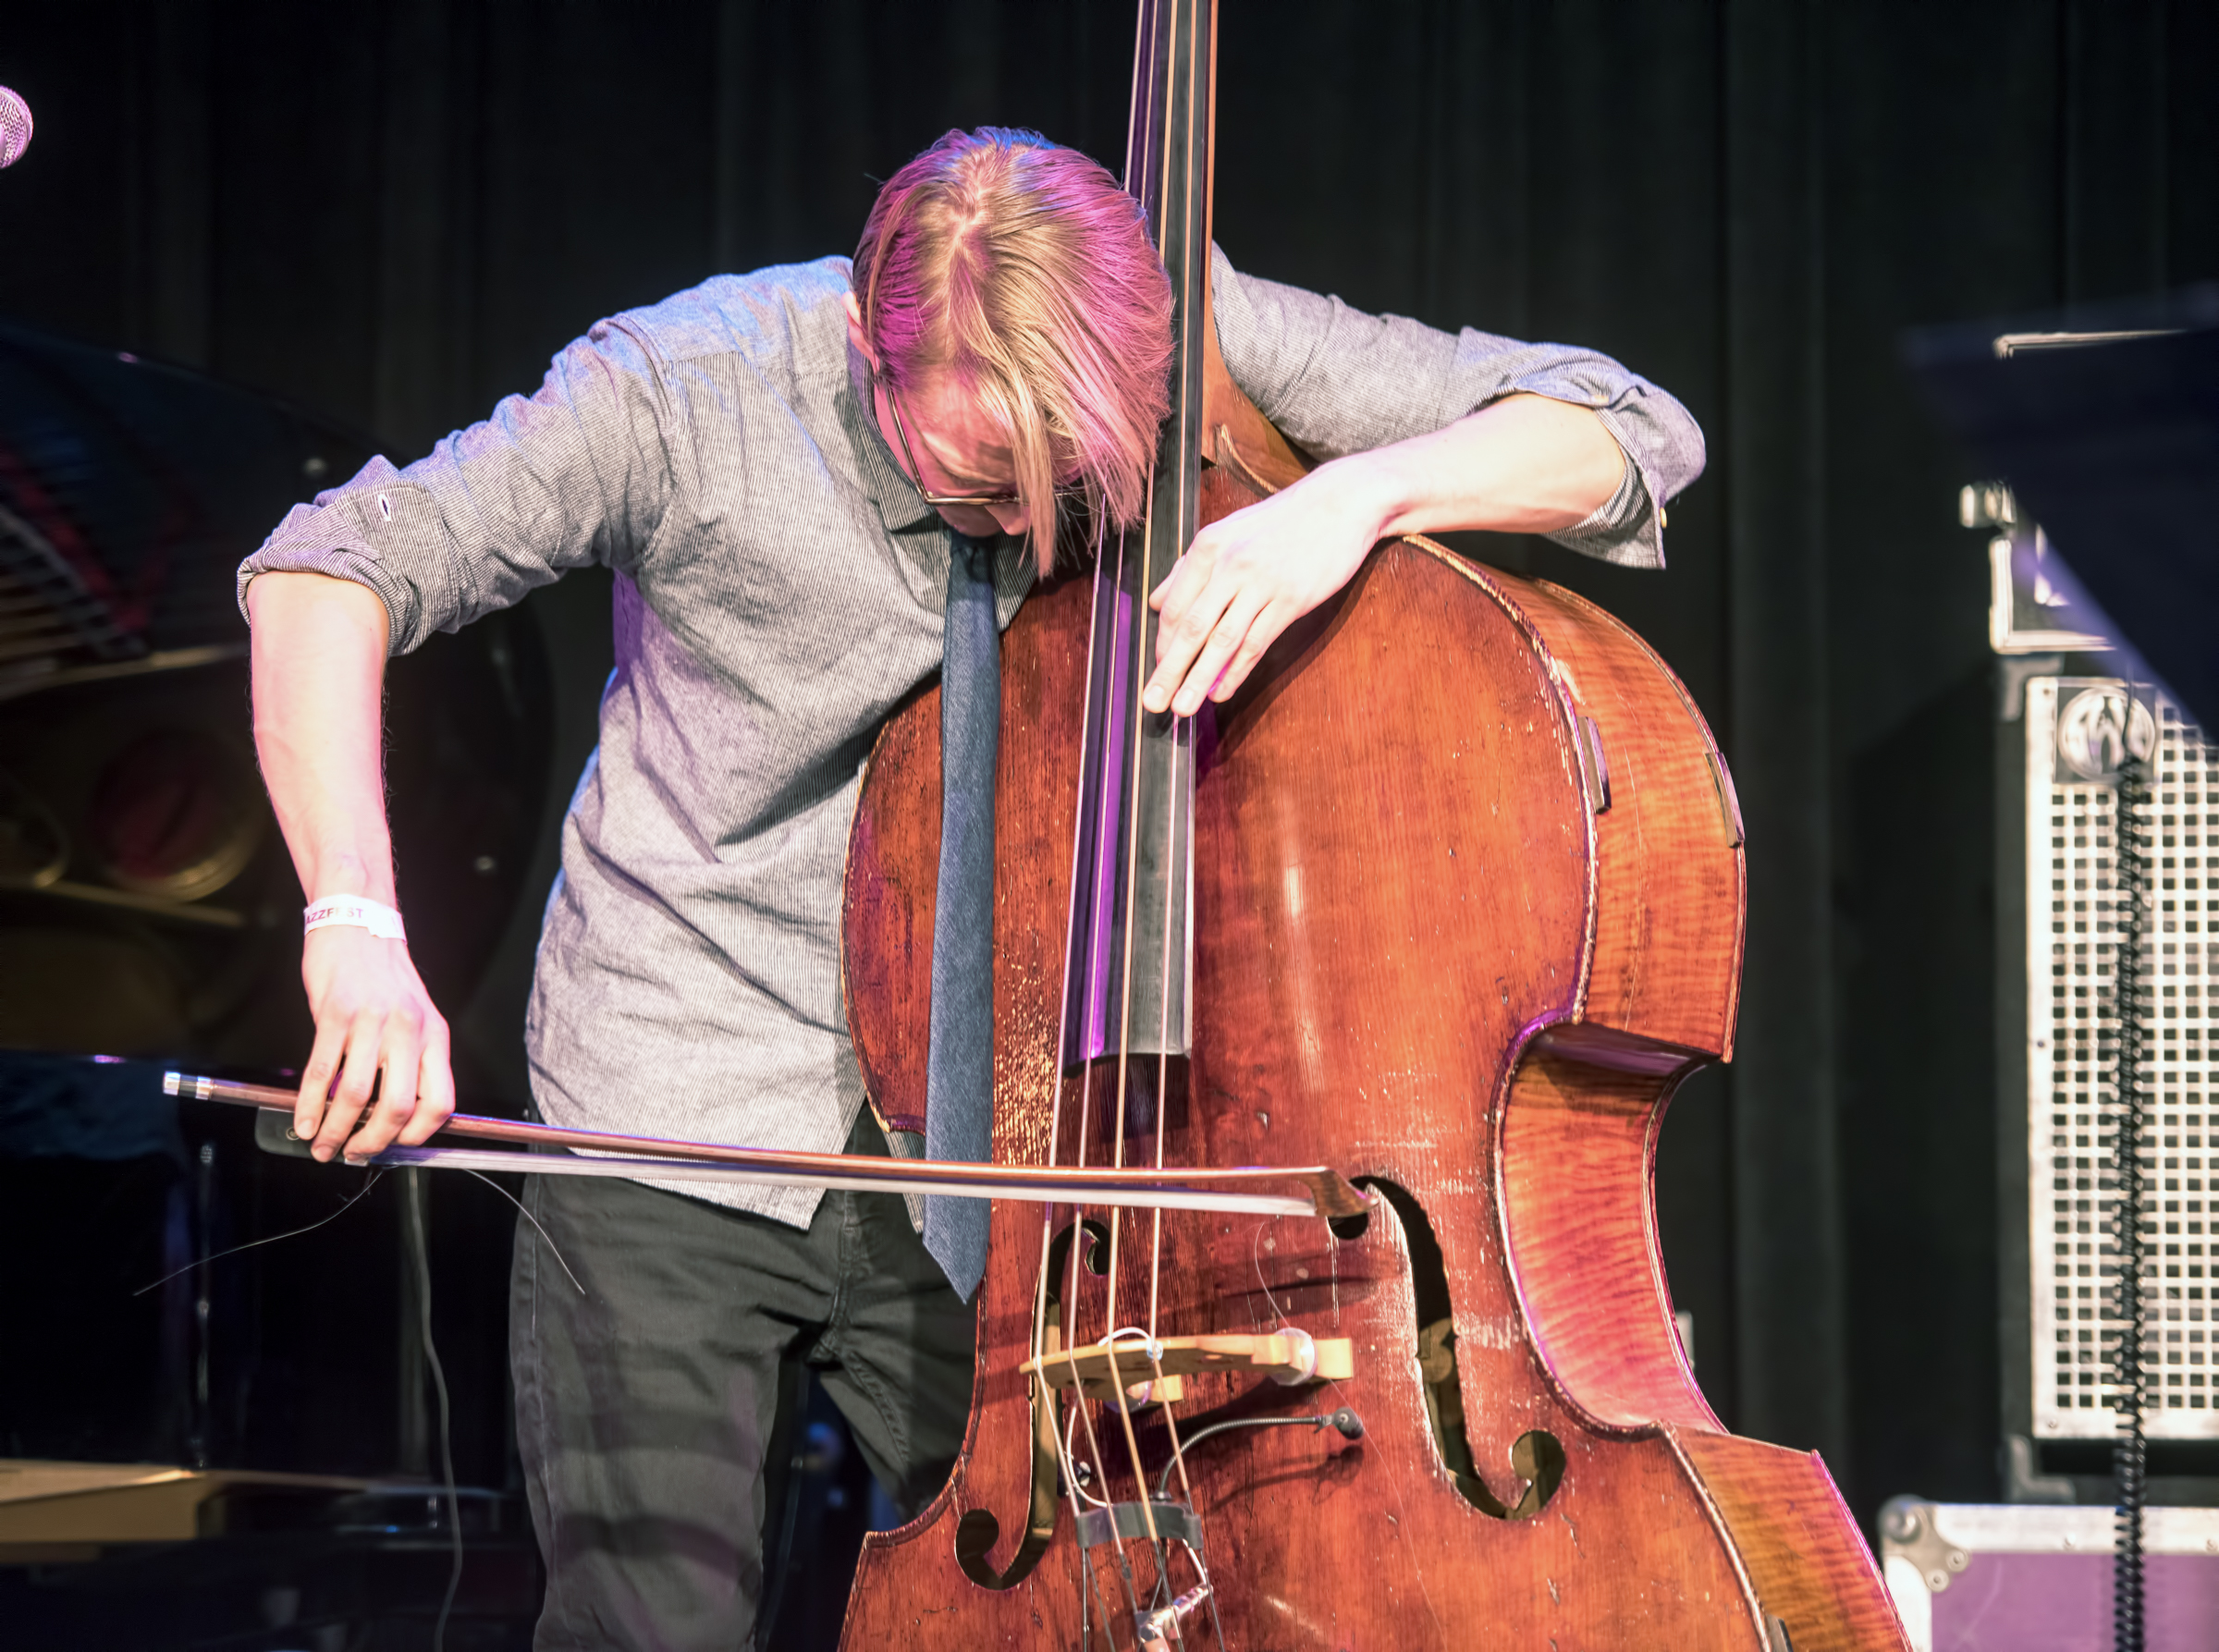 Eivind Opsvik with Overseas at the Nyc Winter Jazzfest 2015